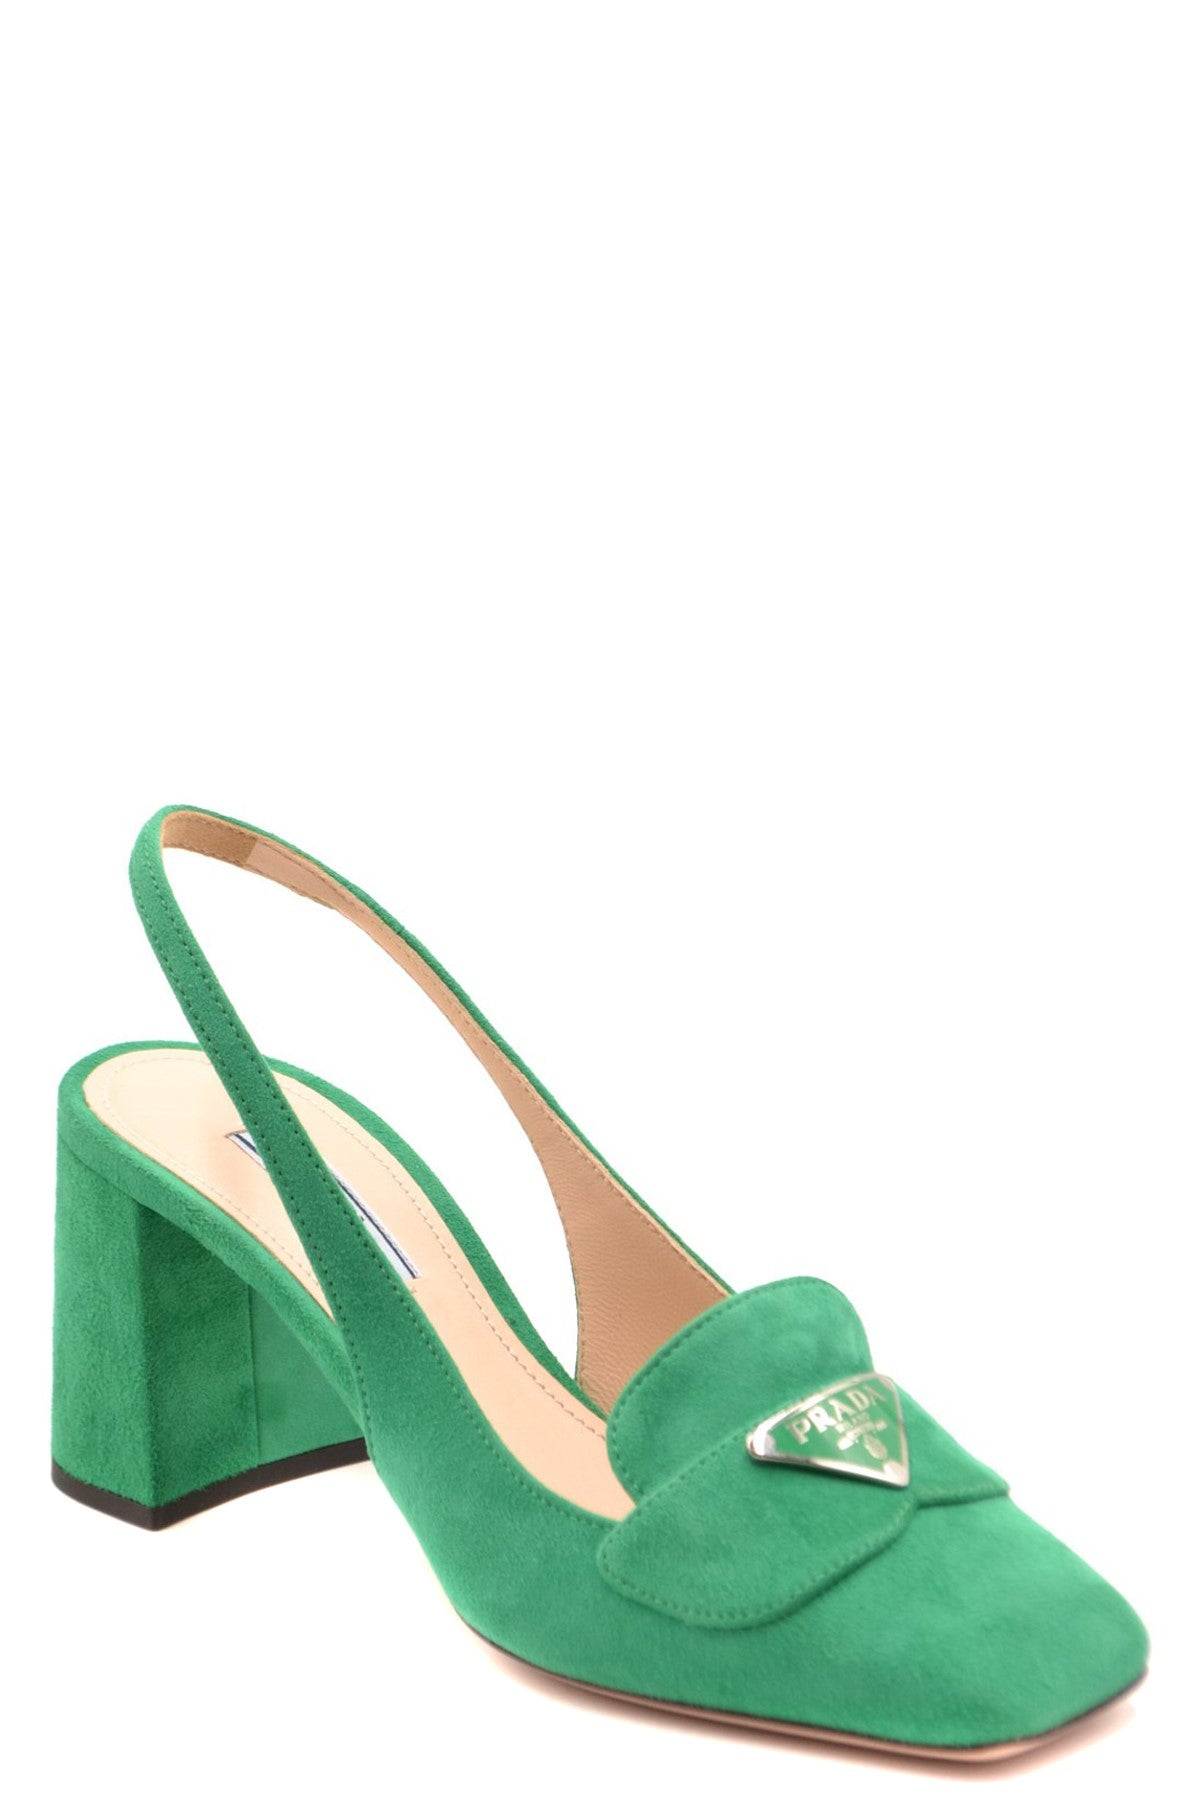 Shoes Prada-Women's Fashion - Women's Shoes - Women's Sandals-Product Details Terms: New With LabelMain Color: GreenType Of Accessory: ShoesSeason: Spring / SummerMade In: ItalyGender: WomanHeel'S Height: 8Size: EuComposition: Chamois 100%Year: 2020Manufacturer Part Number: 1D016M 008 F077U 11-Keyomi-Sook